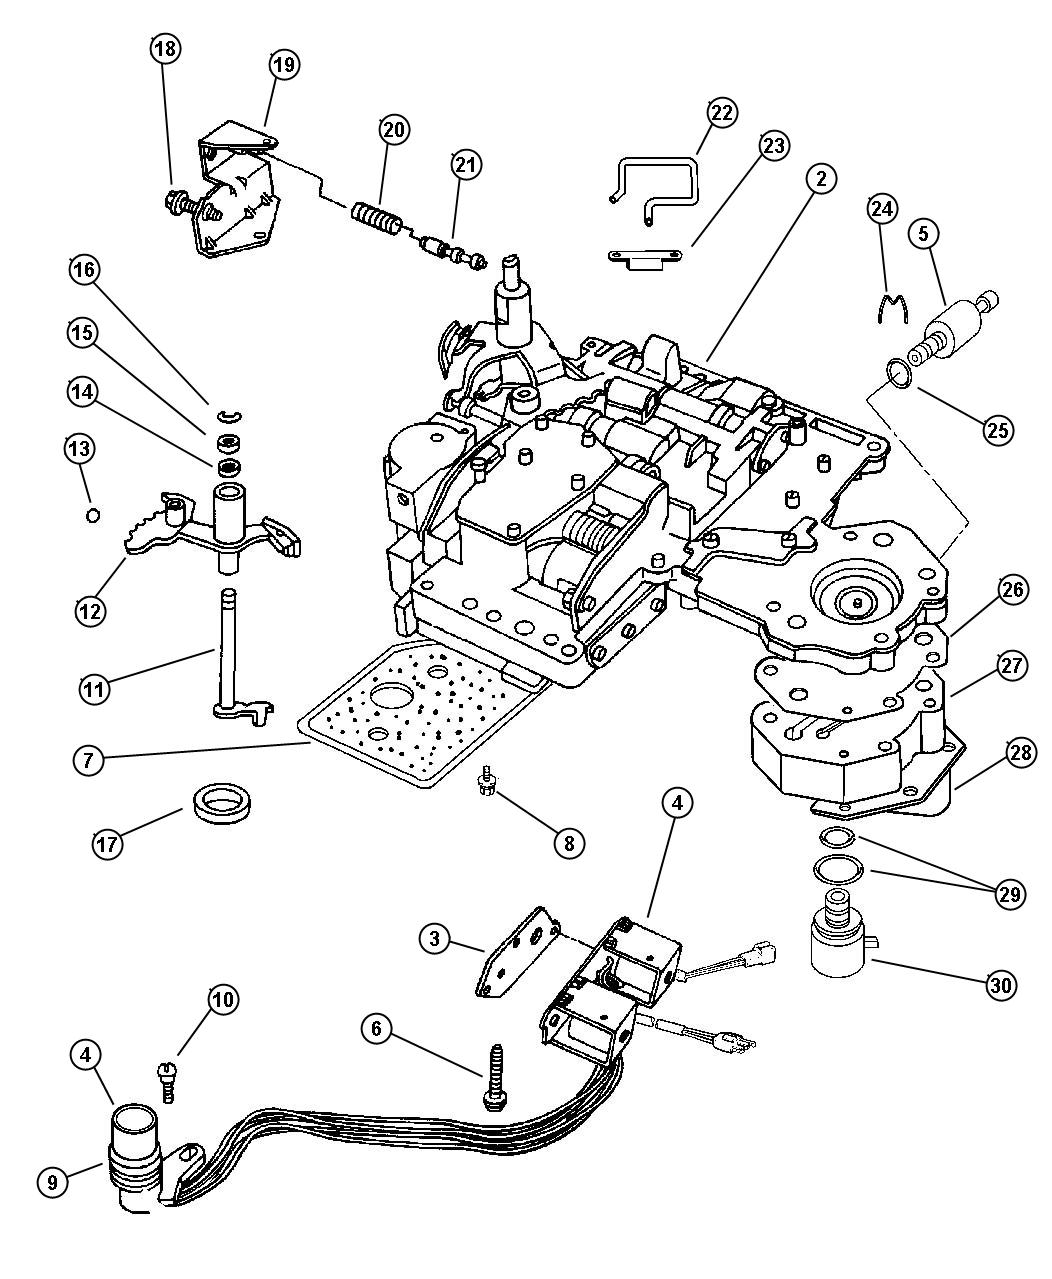 00 Jeep Xj Fuse Box. Jeep. Auto Wiring Diagram